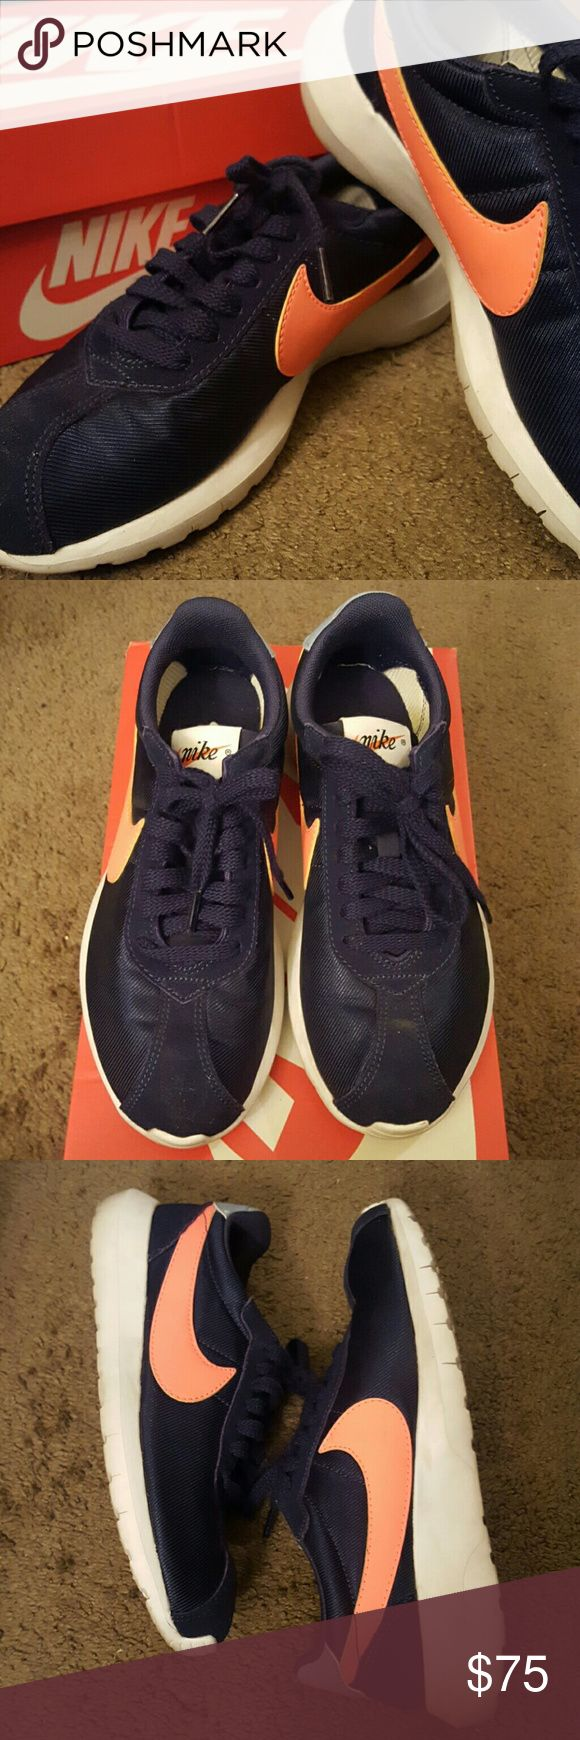 Navy Blue Nike Roshe LD-1000 size 7.5 Navy Blue Nike Roshe LD-1000 size 7.5. Nike swoosh is a coral pink. Gently worn a few times, no rips holes or stains! Comes with box.  Bundle and save! Nike Shoes Athletic Shoes